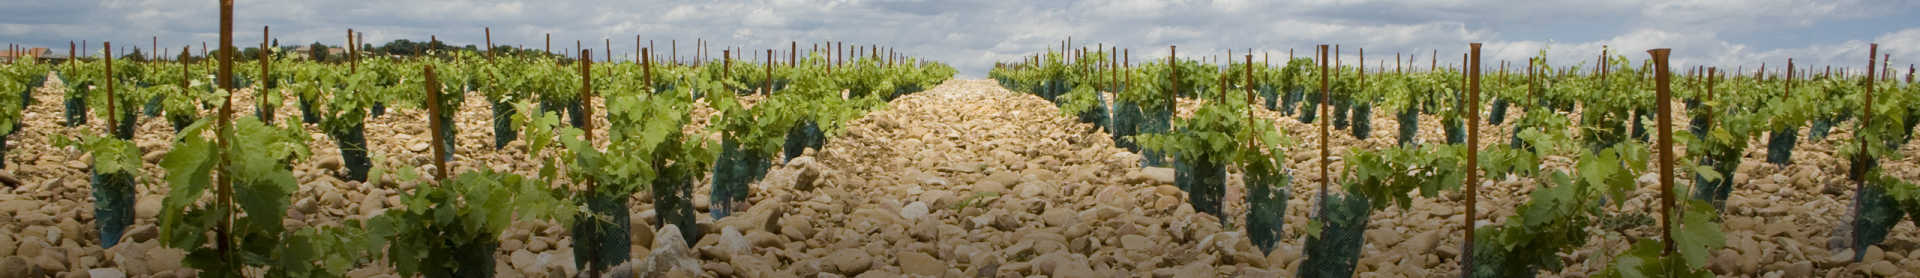 Image for Chateauneuf-du-Pape Rhone, France content section